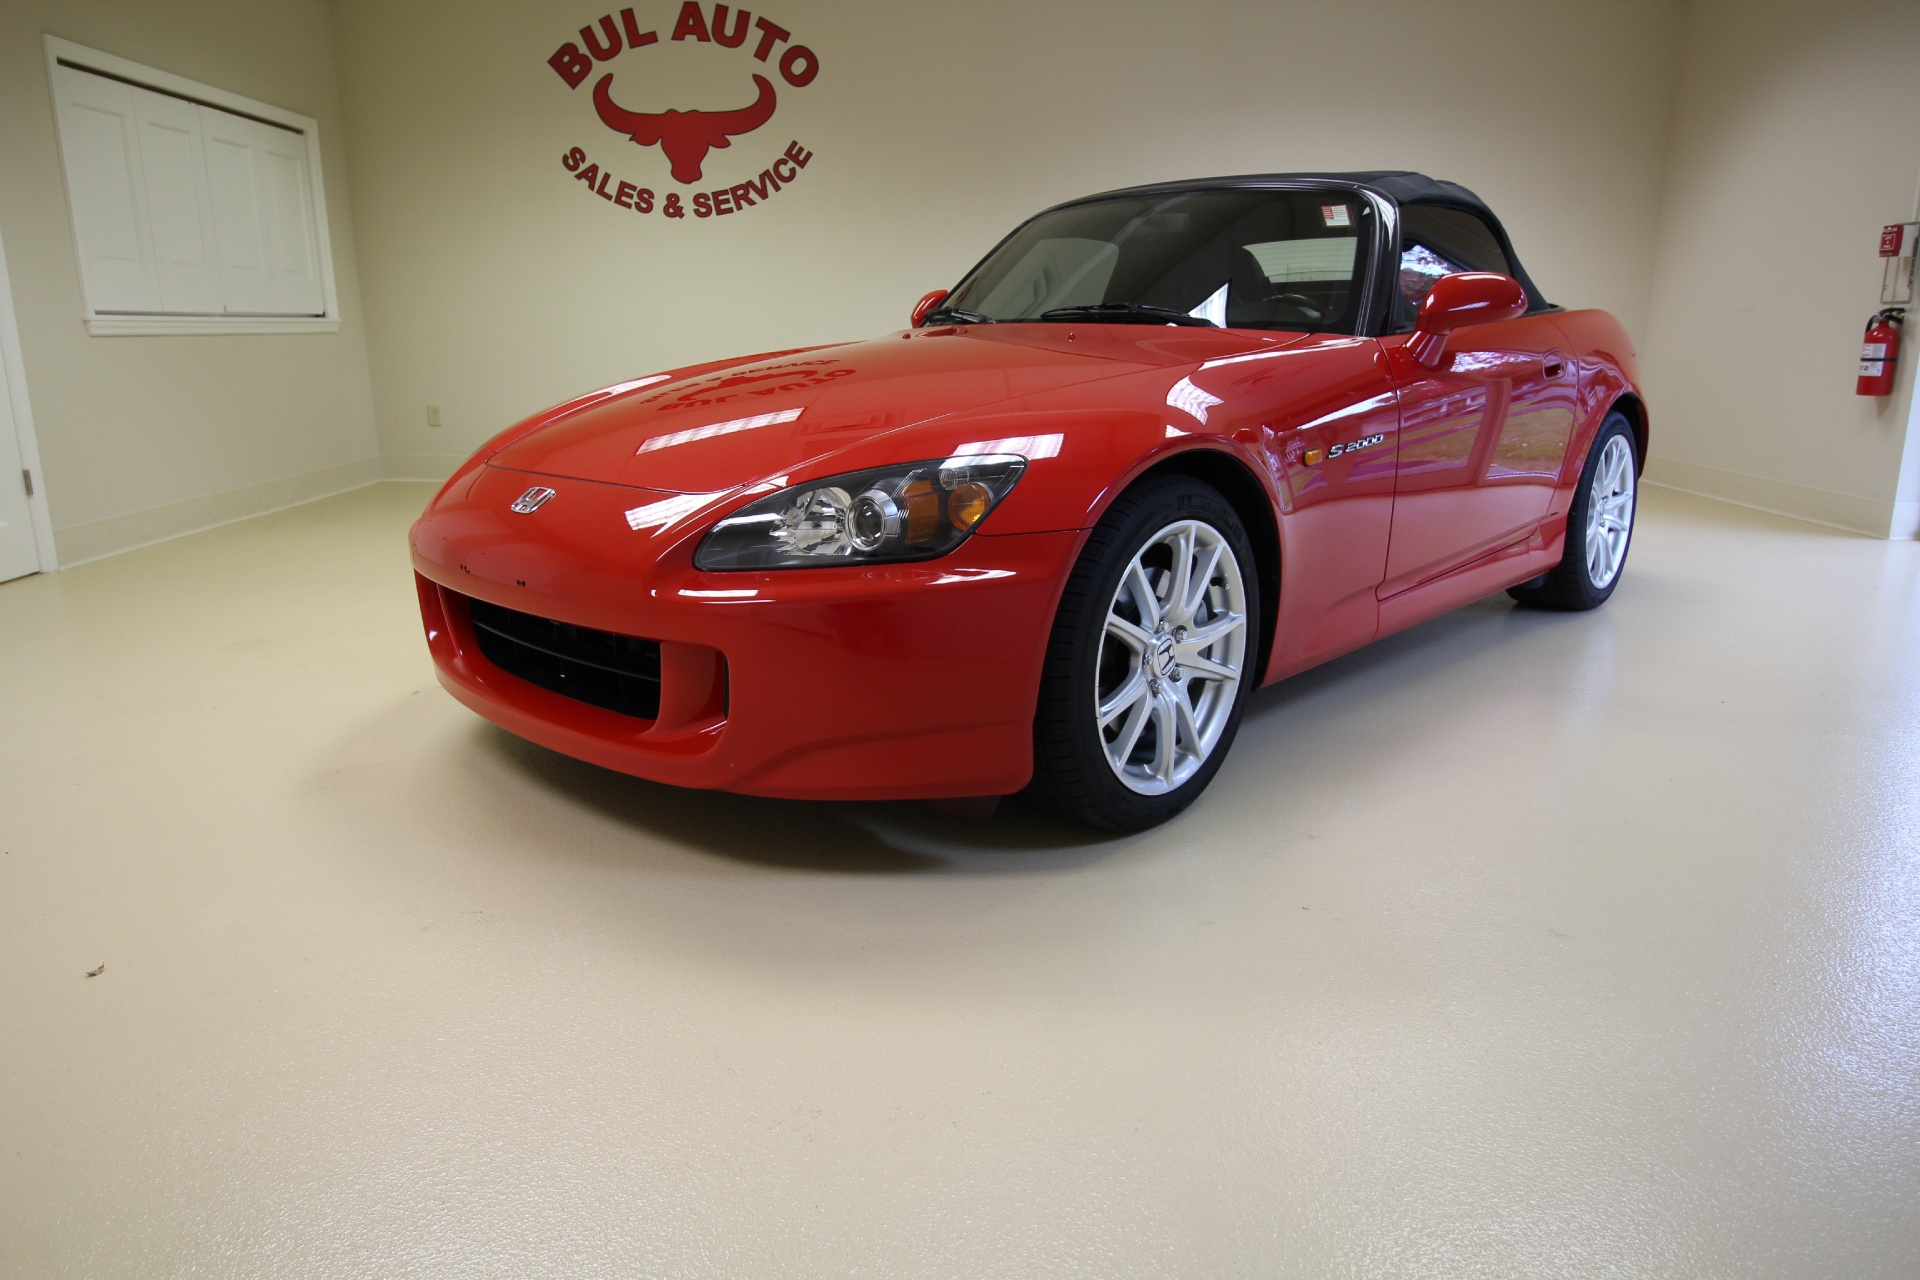 Used 2004 Honda S2000 LIKE NEW UNMOLESTED ALL ORIGINAL NO MODS